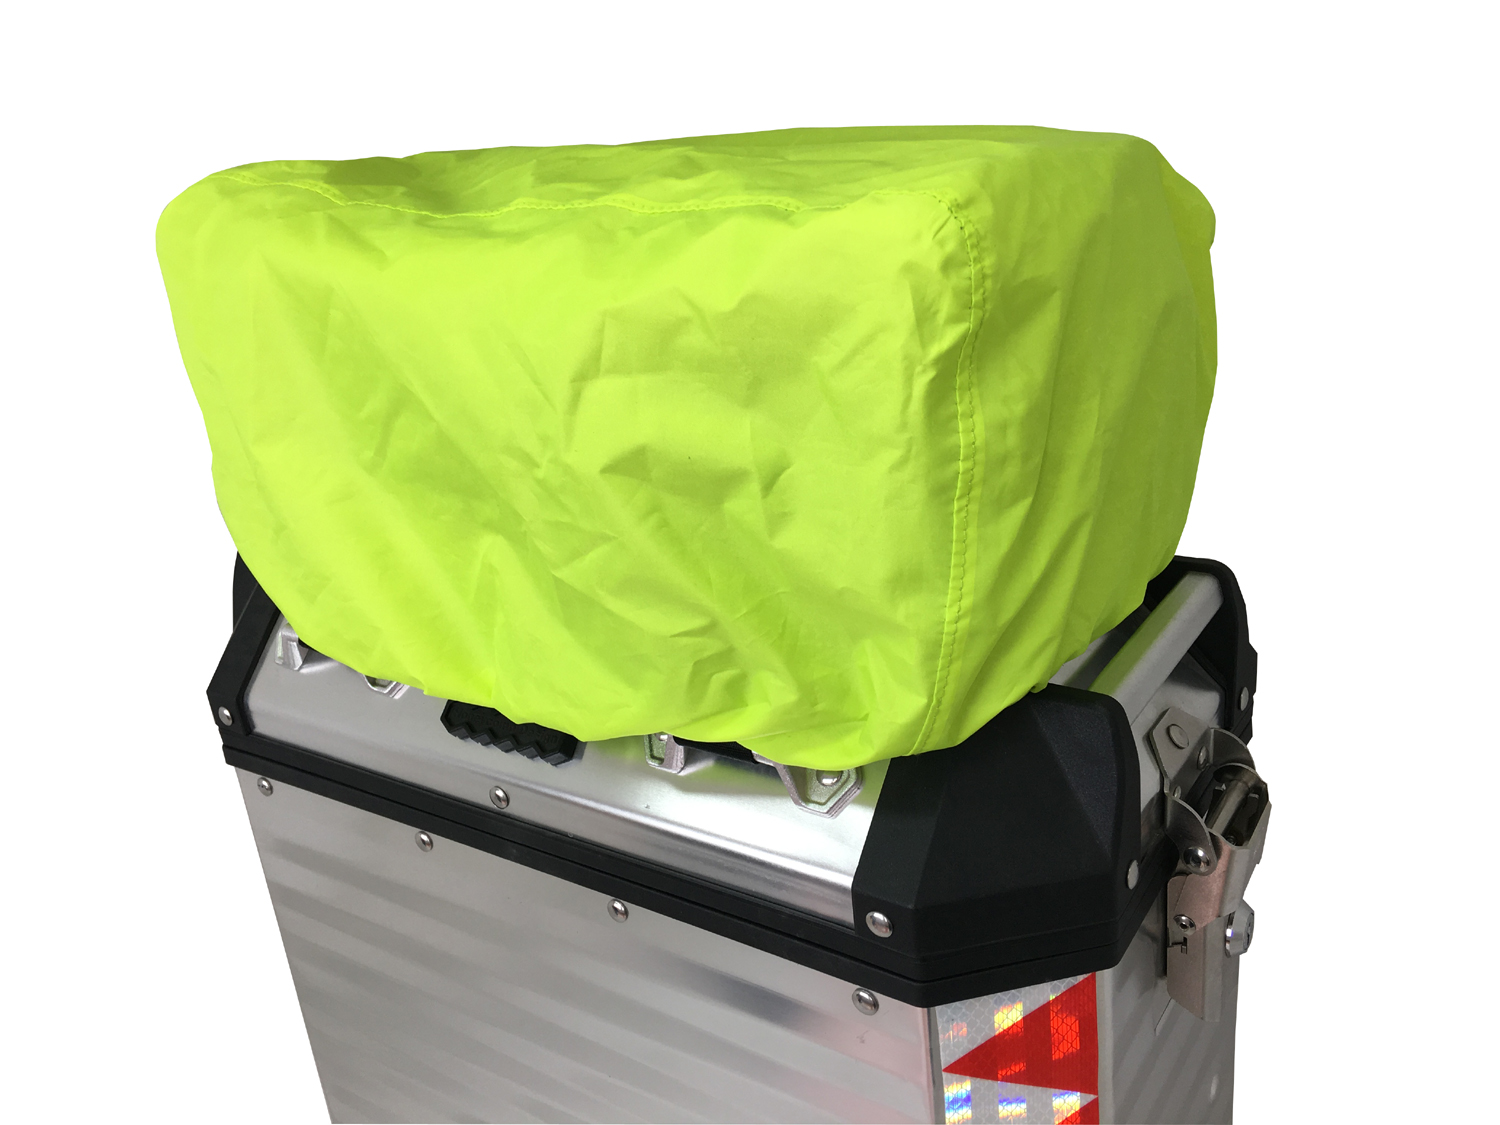 16L top bag on side aluminum box (1).JPG